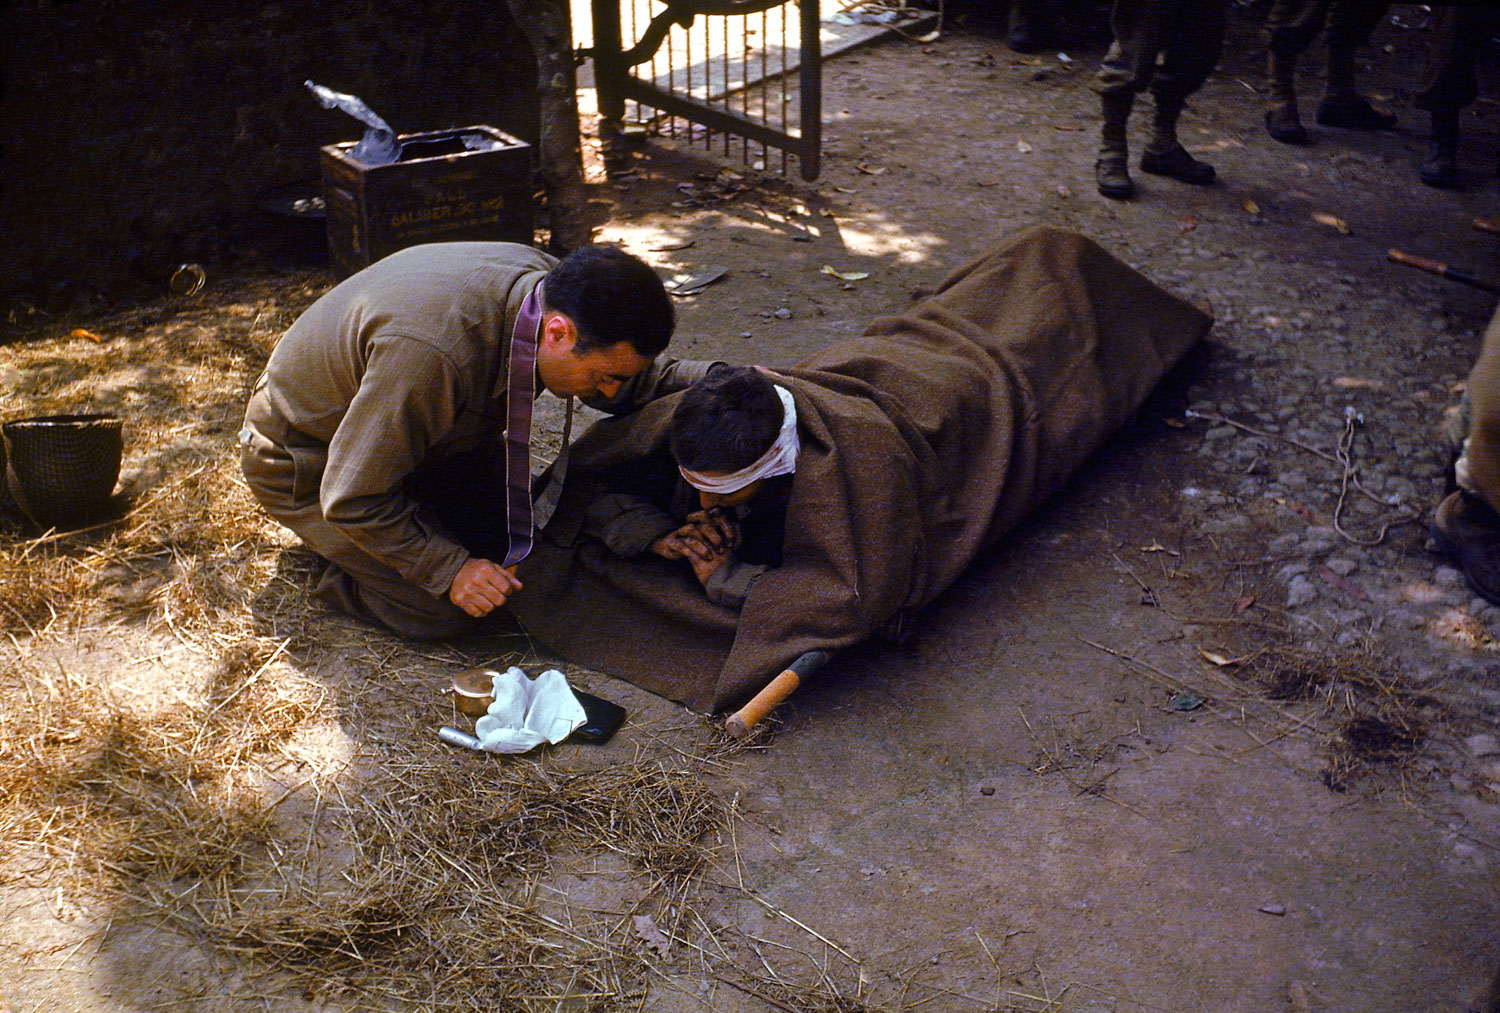 An American Army chaplain kneels next to a wounded soldier in order to administer the Eucharist and Last Rites, France, 1944.